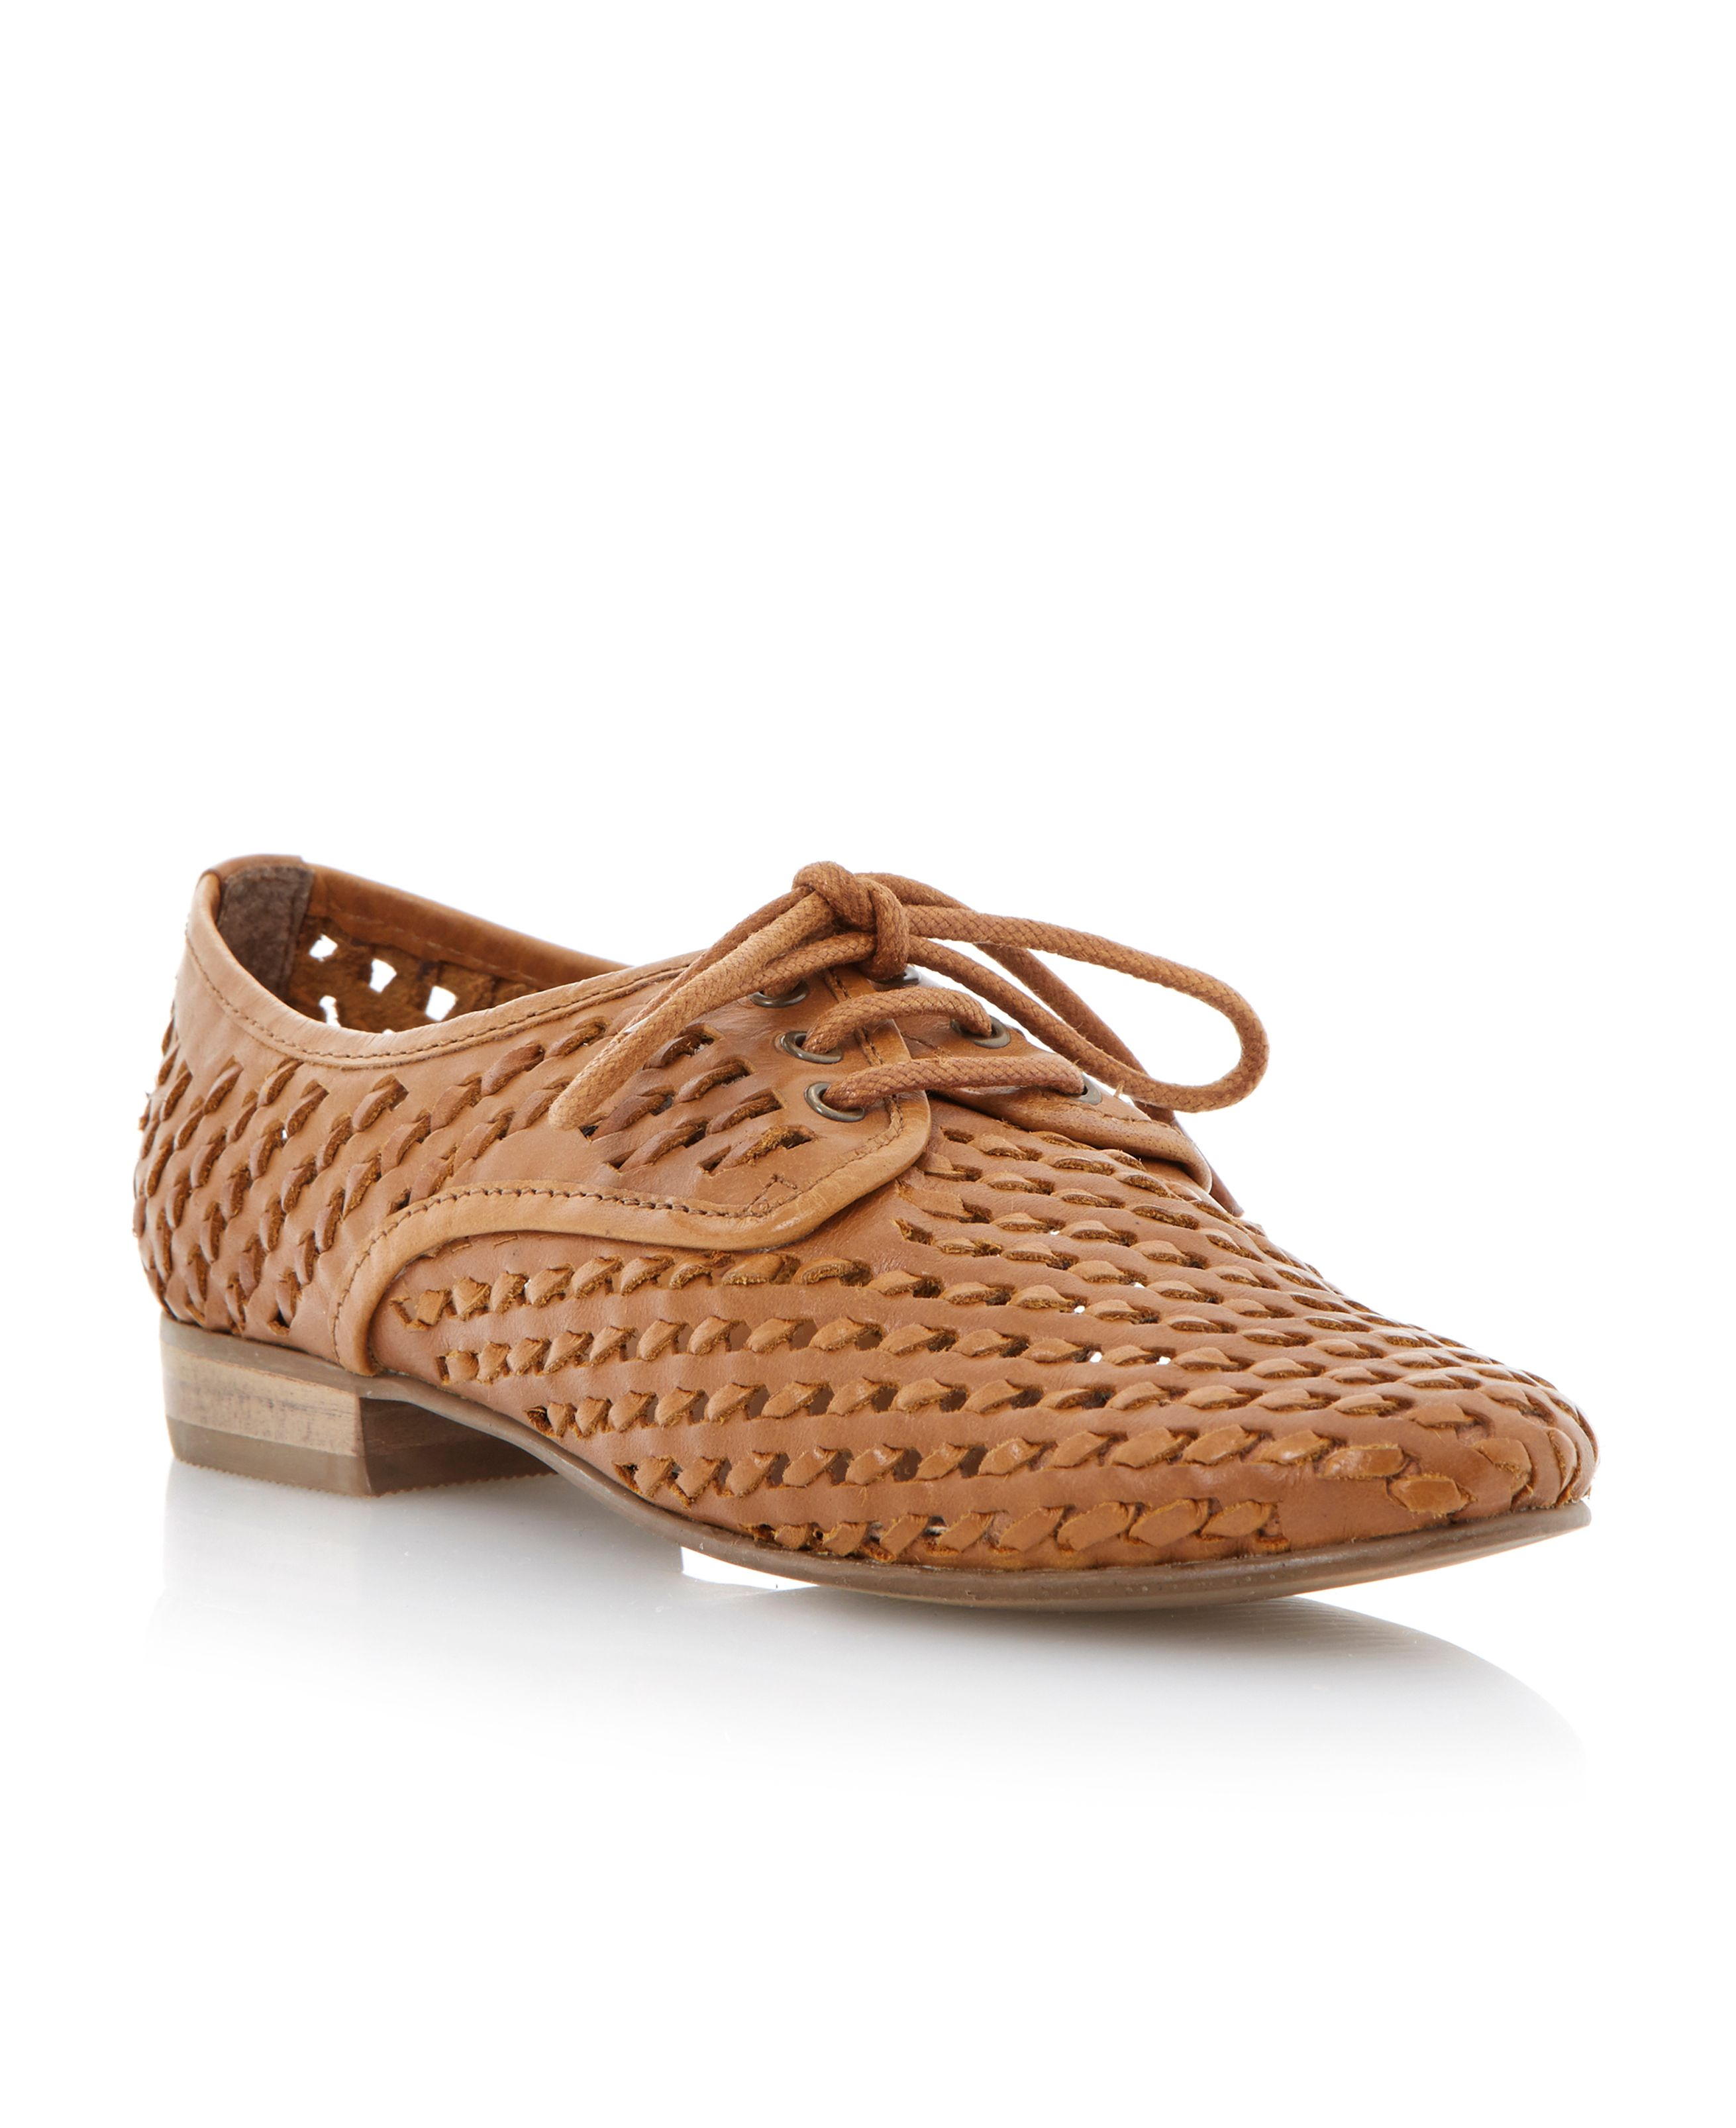 Lost leather almond toe stacked heel shoes